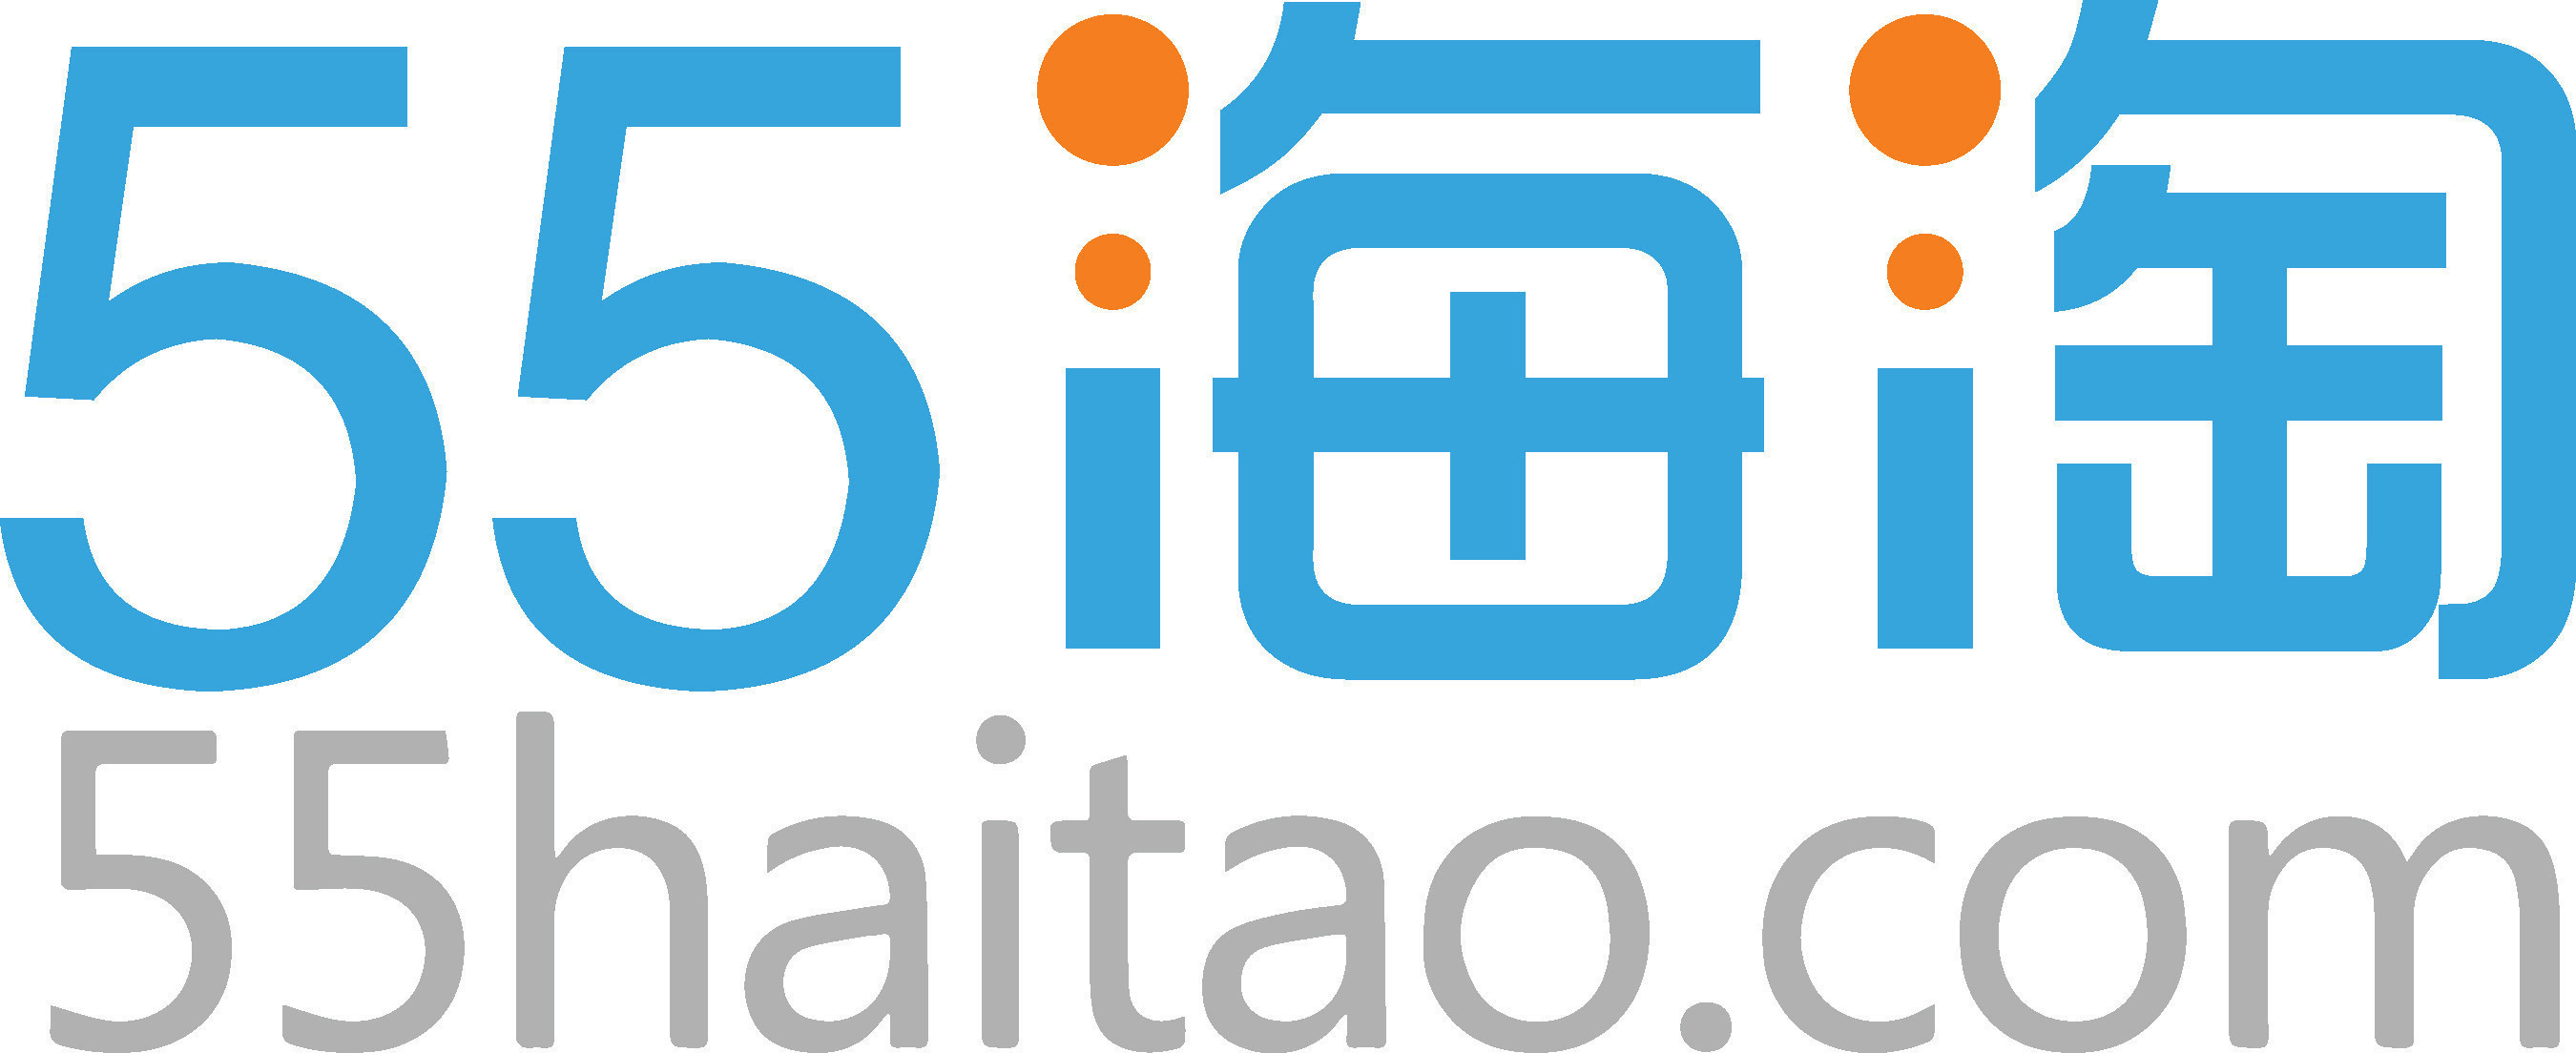 55Haitao.com - China's largest cross-border eCommerce forum and comparison shopping site.